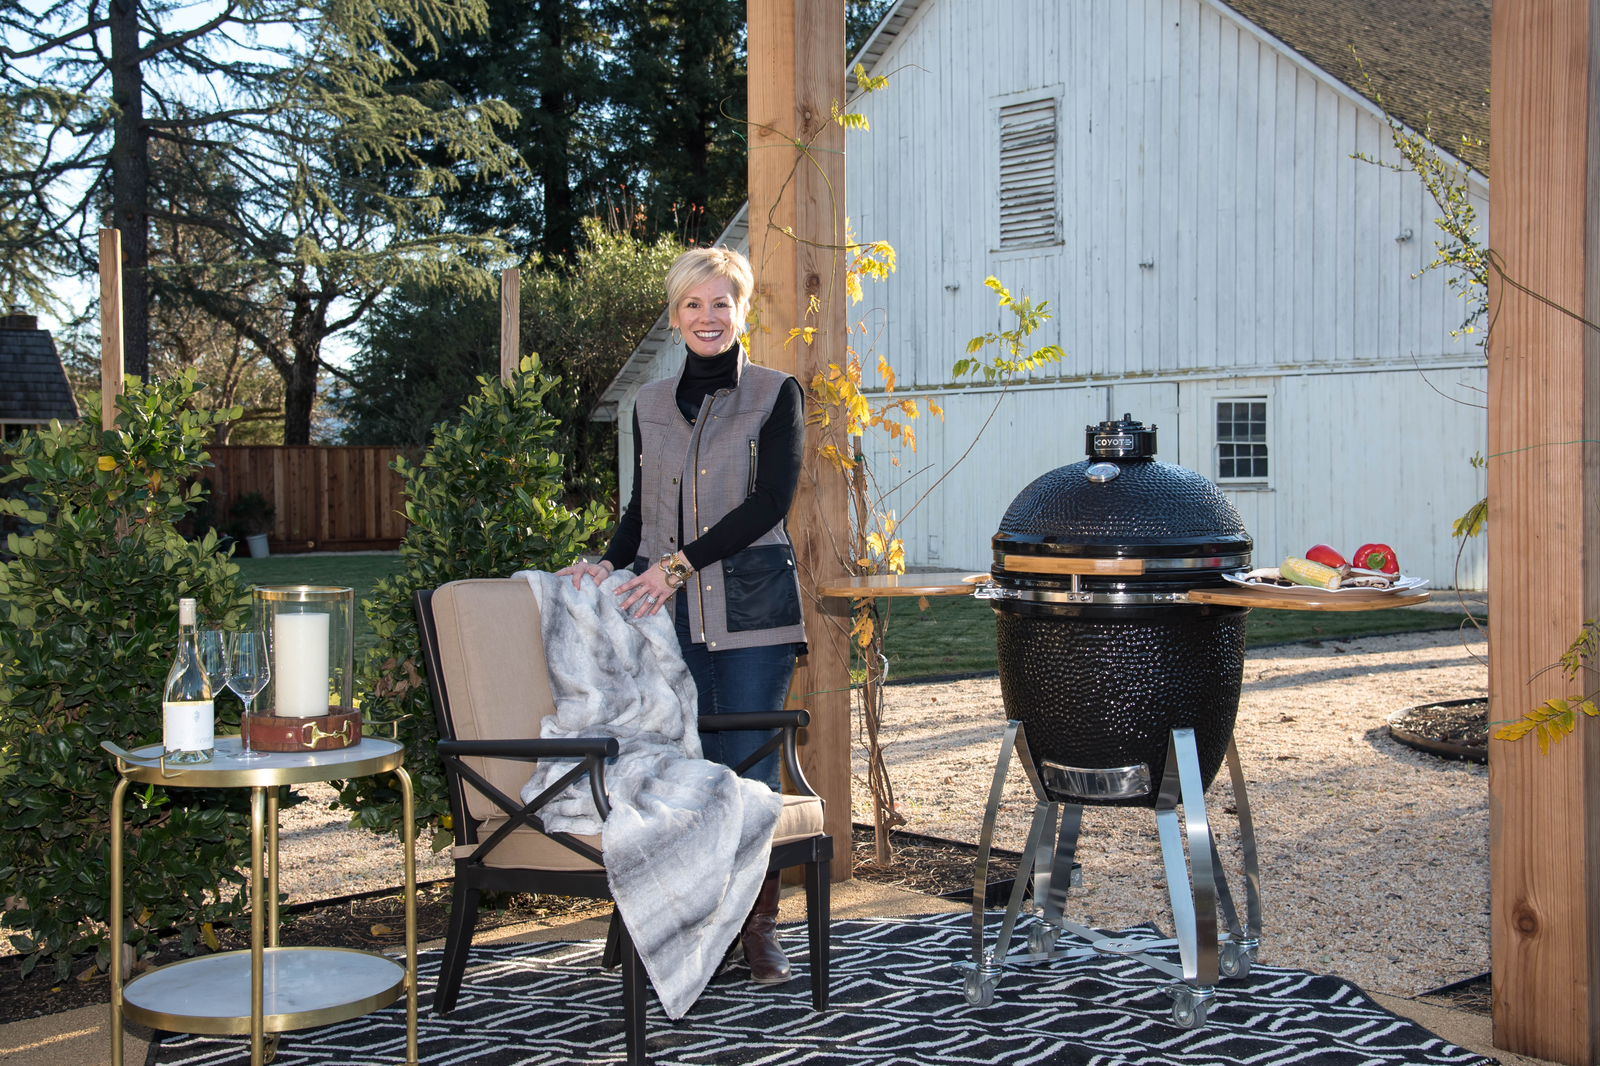 Award-winning designer Kerrie Kelly shares 10 Top Tips for designing the ultimate outdoor living space.